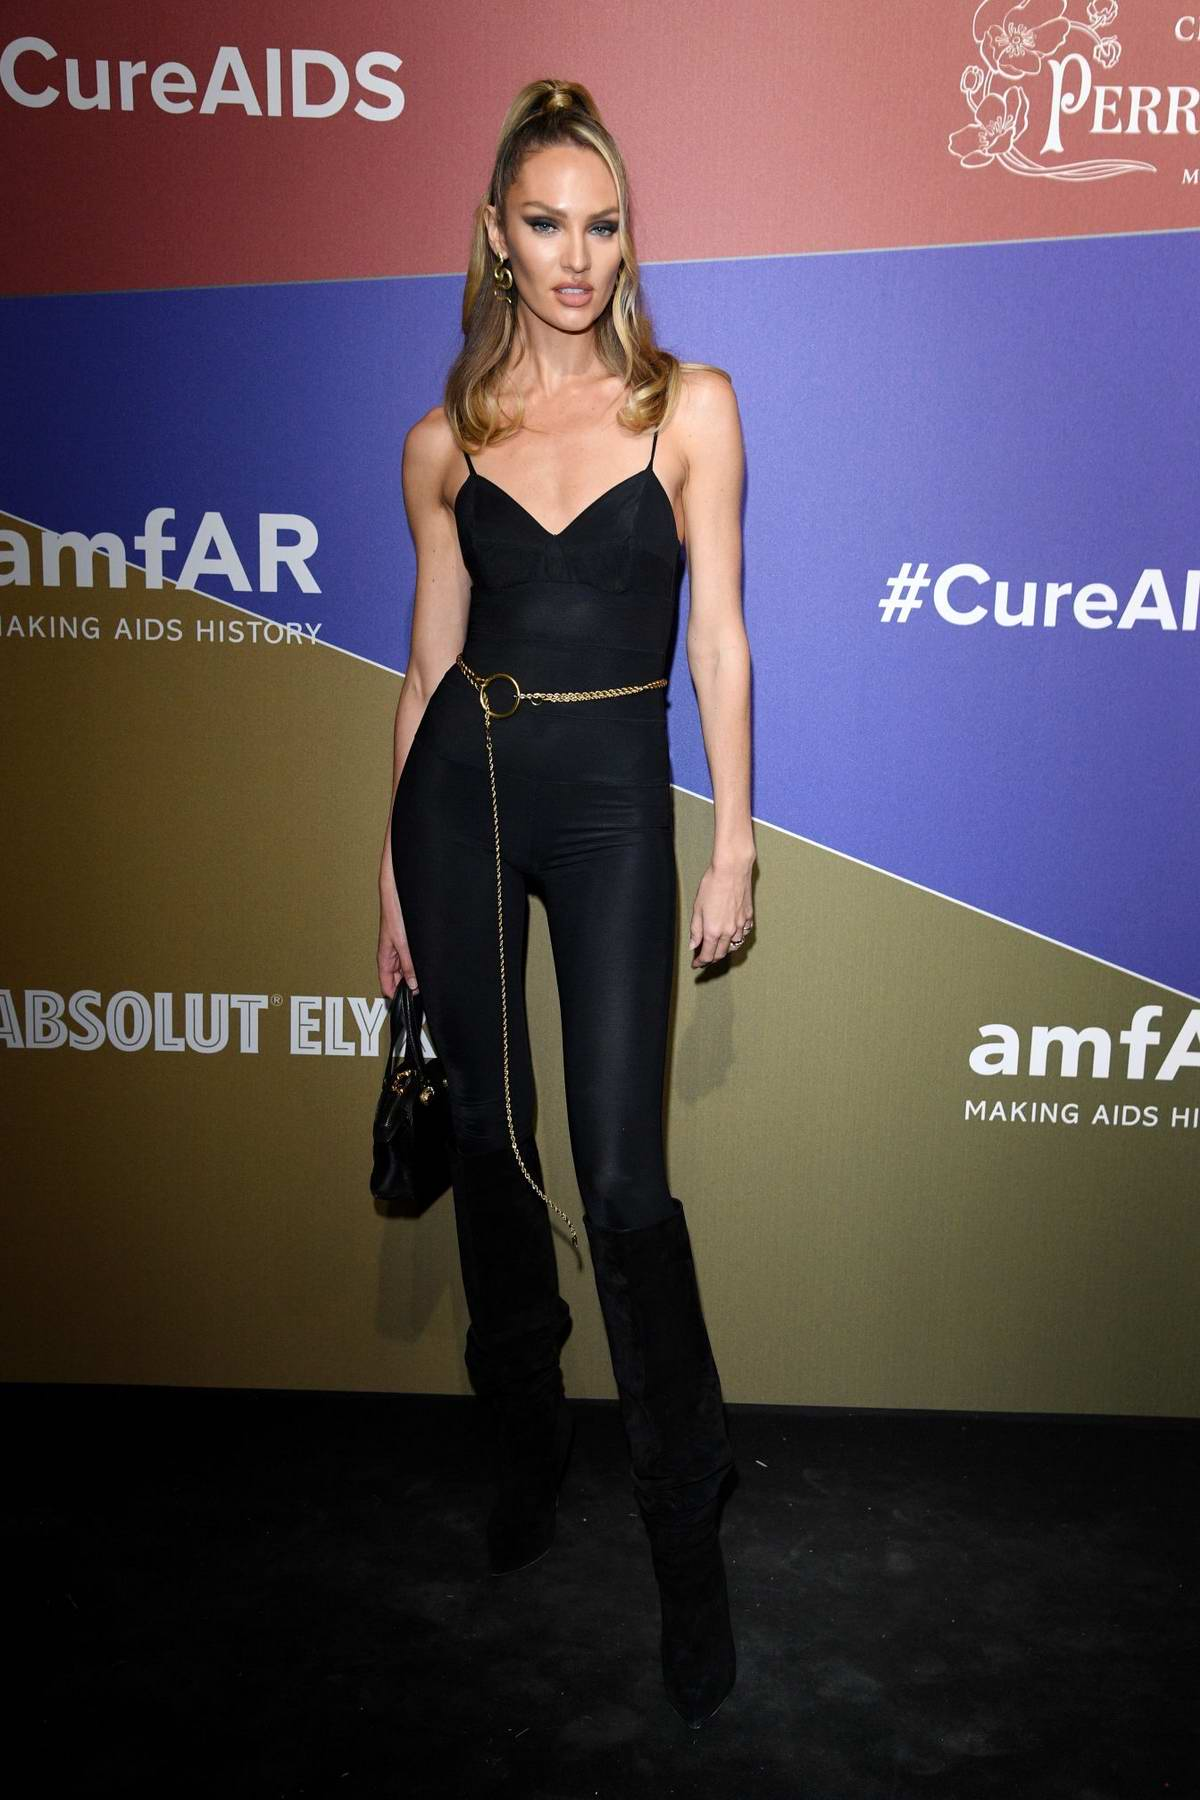 Candice Swanepoel attends the amfAR Gala Milano 2019 at Palazzo Mezzanotte in Milan, Italy